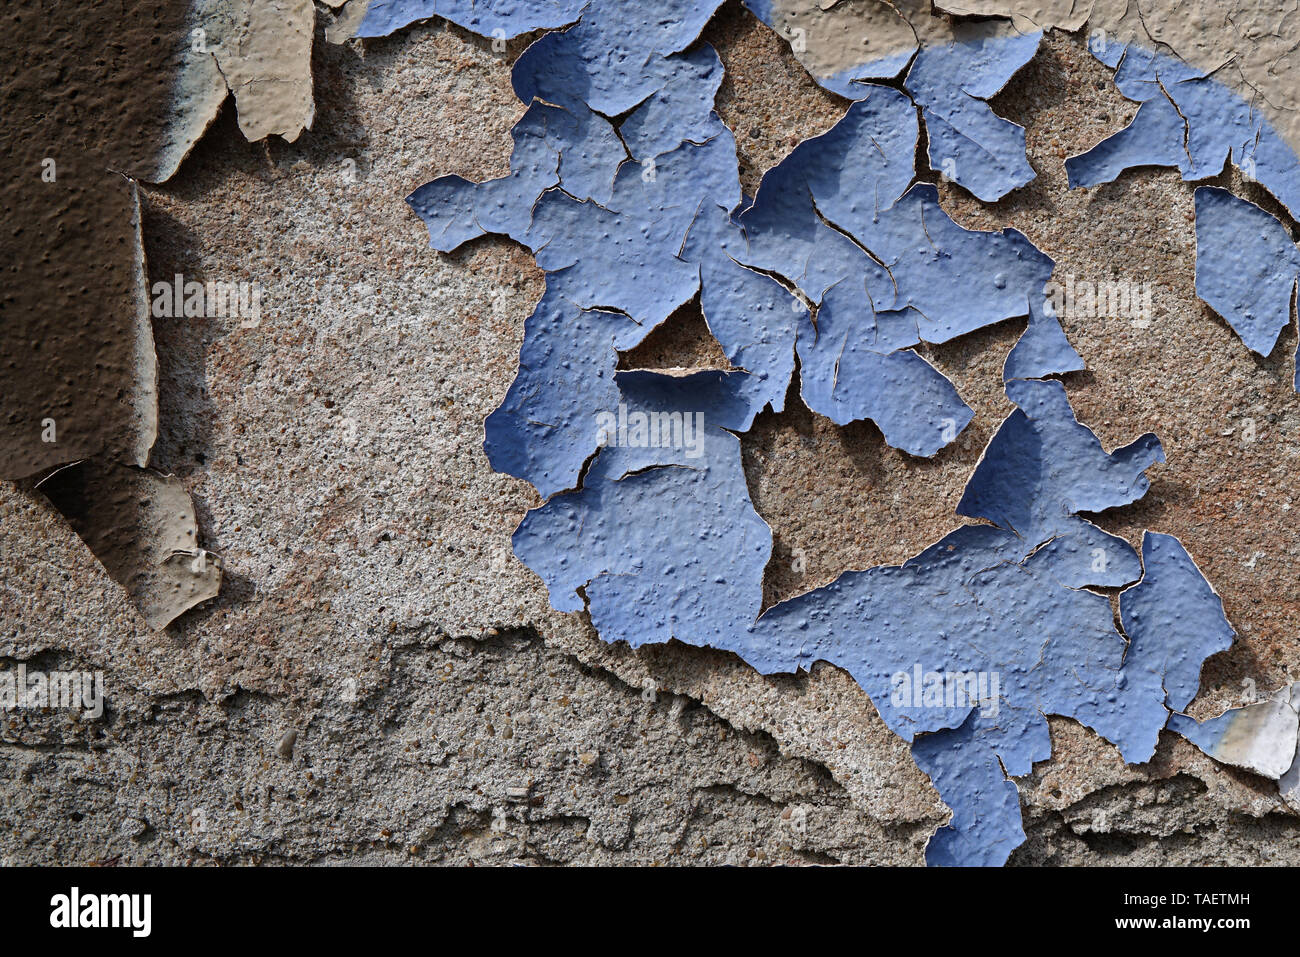 Facade of a house with peeling paint - Stock Image